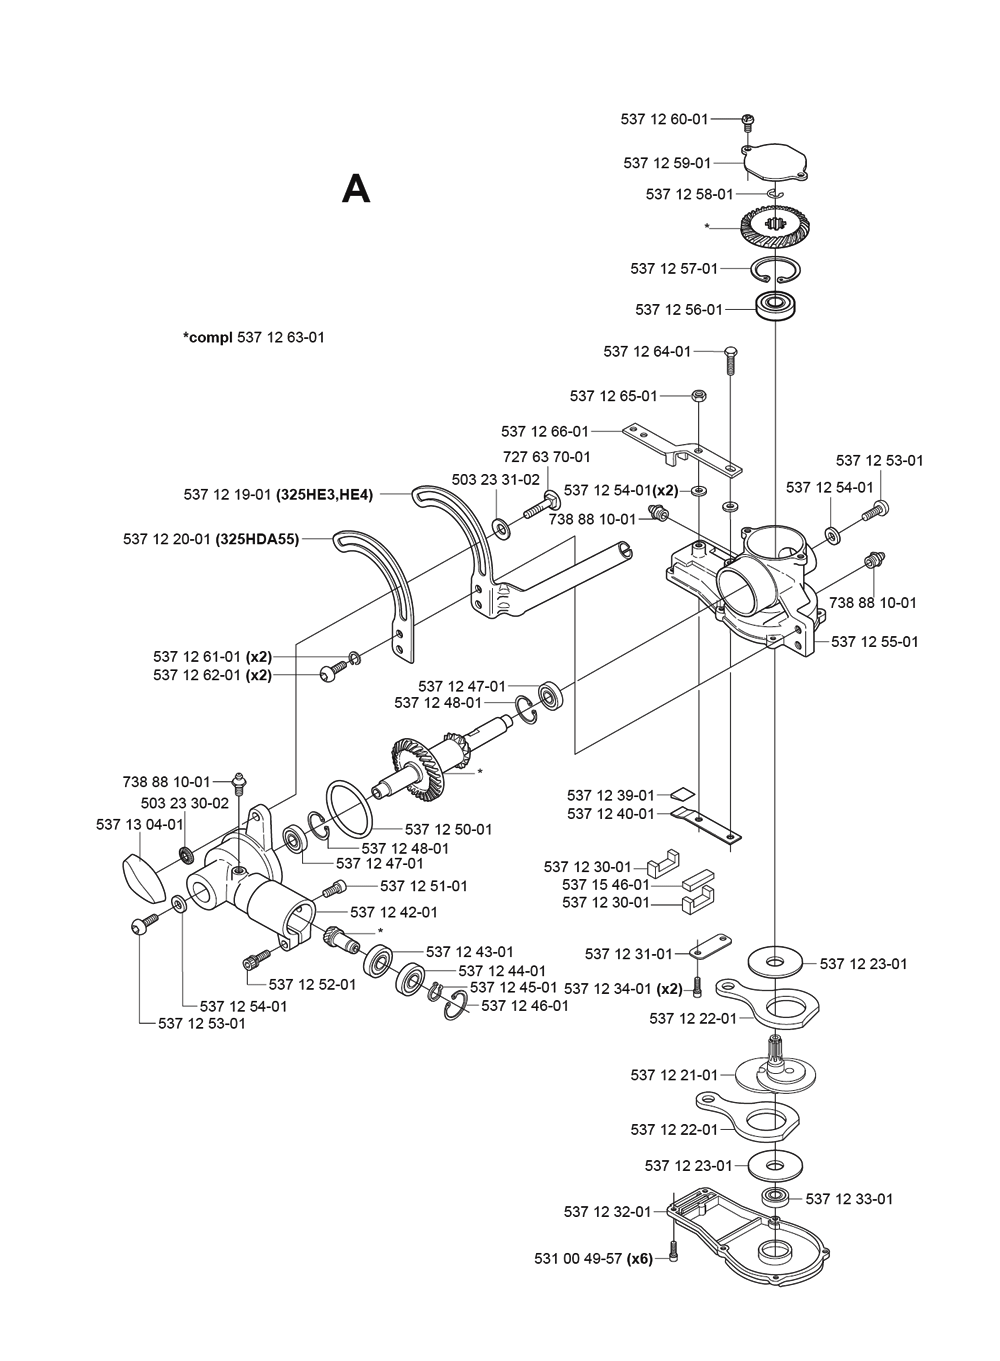 Mahindra Emax Engine Diagrams Force Engine Diagram Wiring